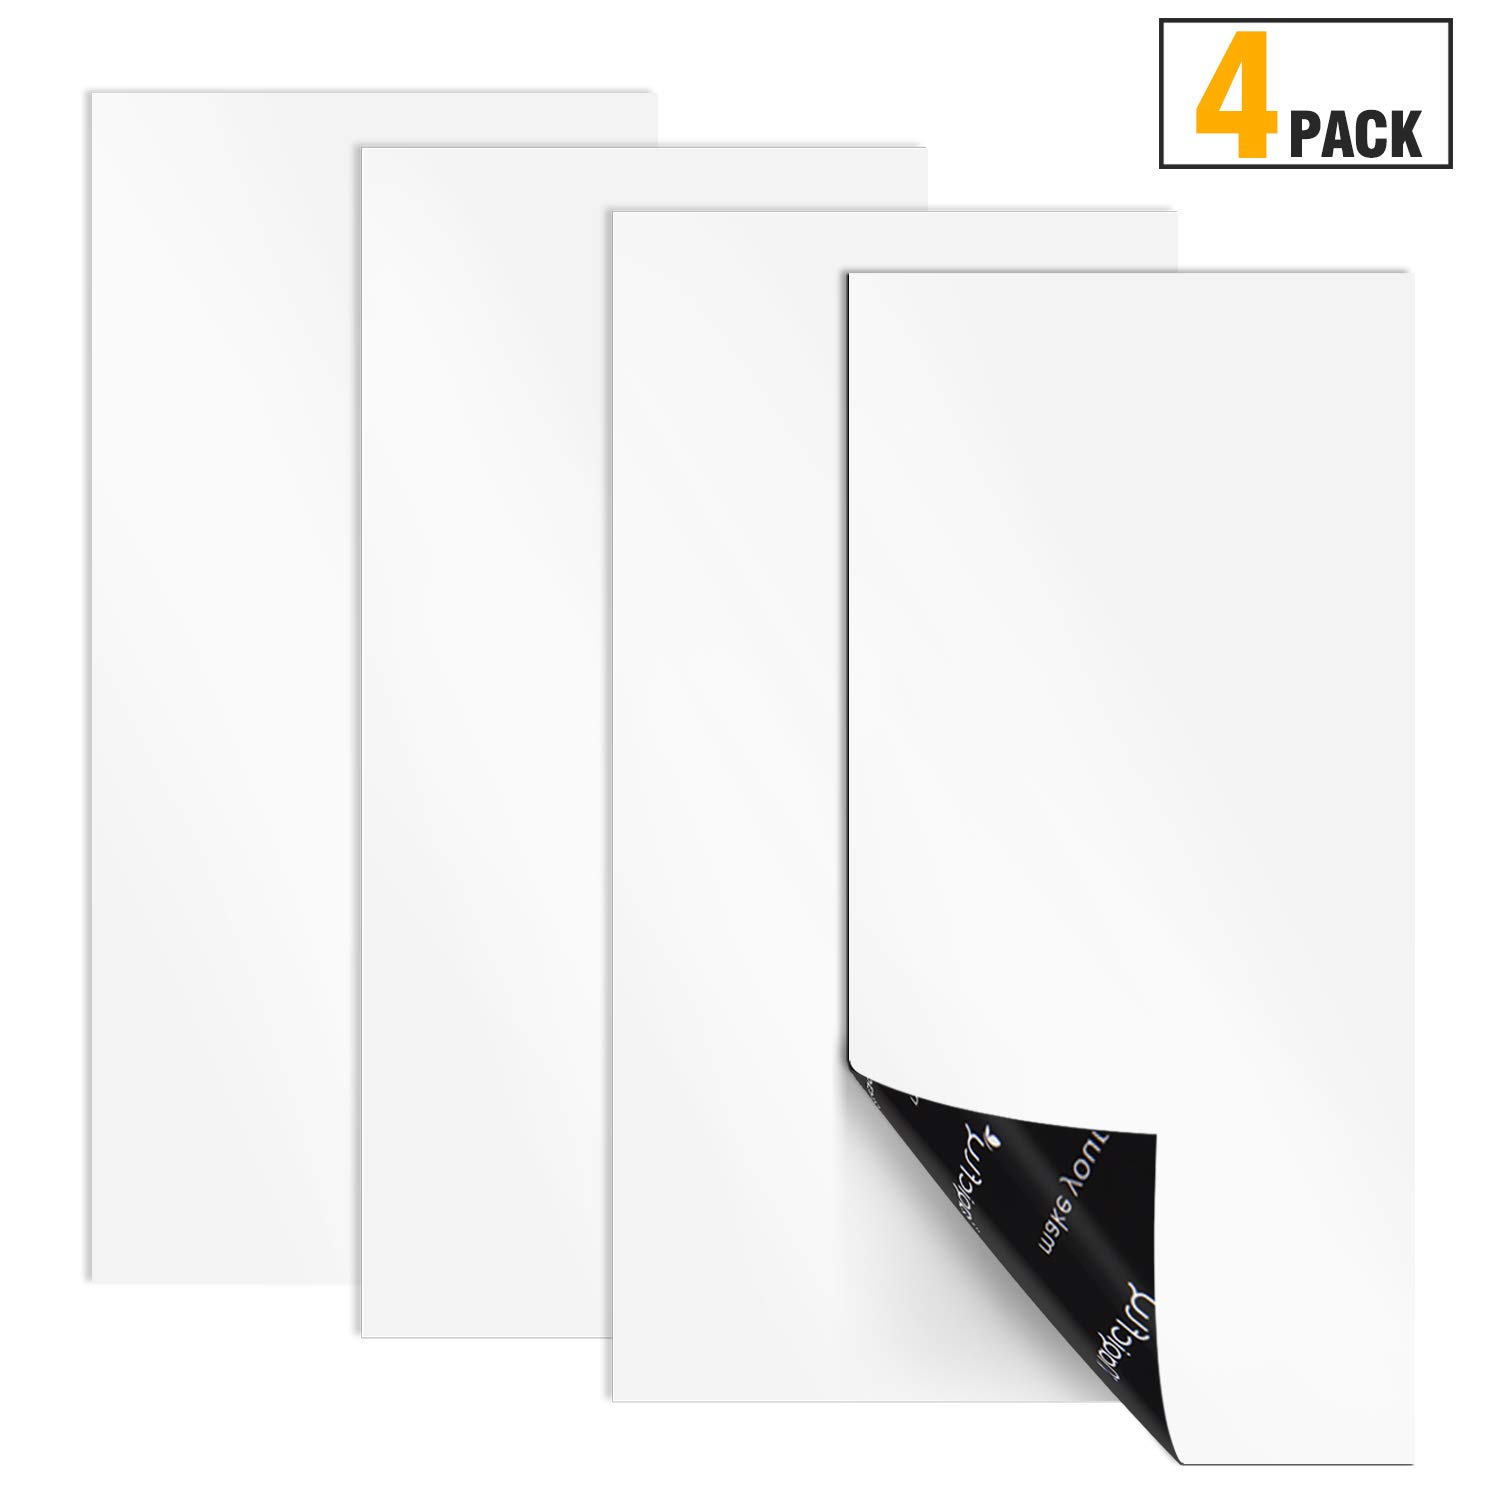 """Magicfly Magnetic Vent Covers, 4 Pack, 12"""" x 5.5"""" Ultra Thick Magnet for Vents in Homes, Air Grills, Registers, RVs, HVAC Units, (Not for Ceiling Or Aluminum Vents)"""